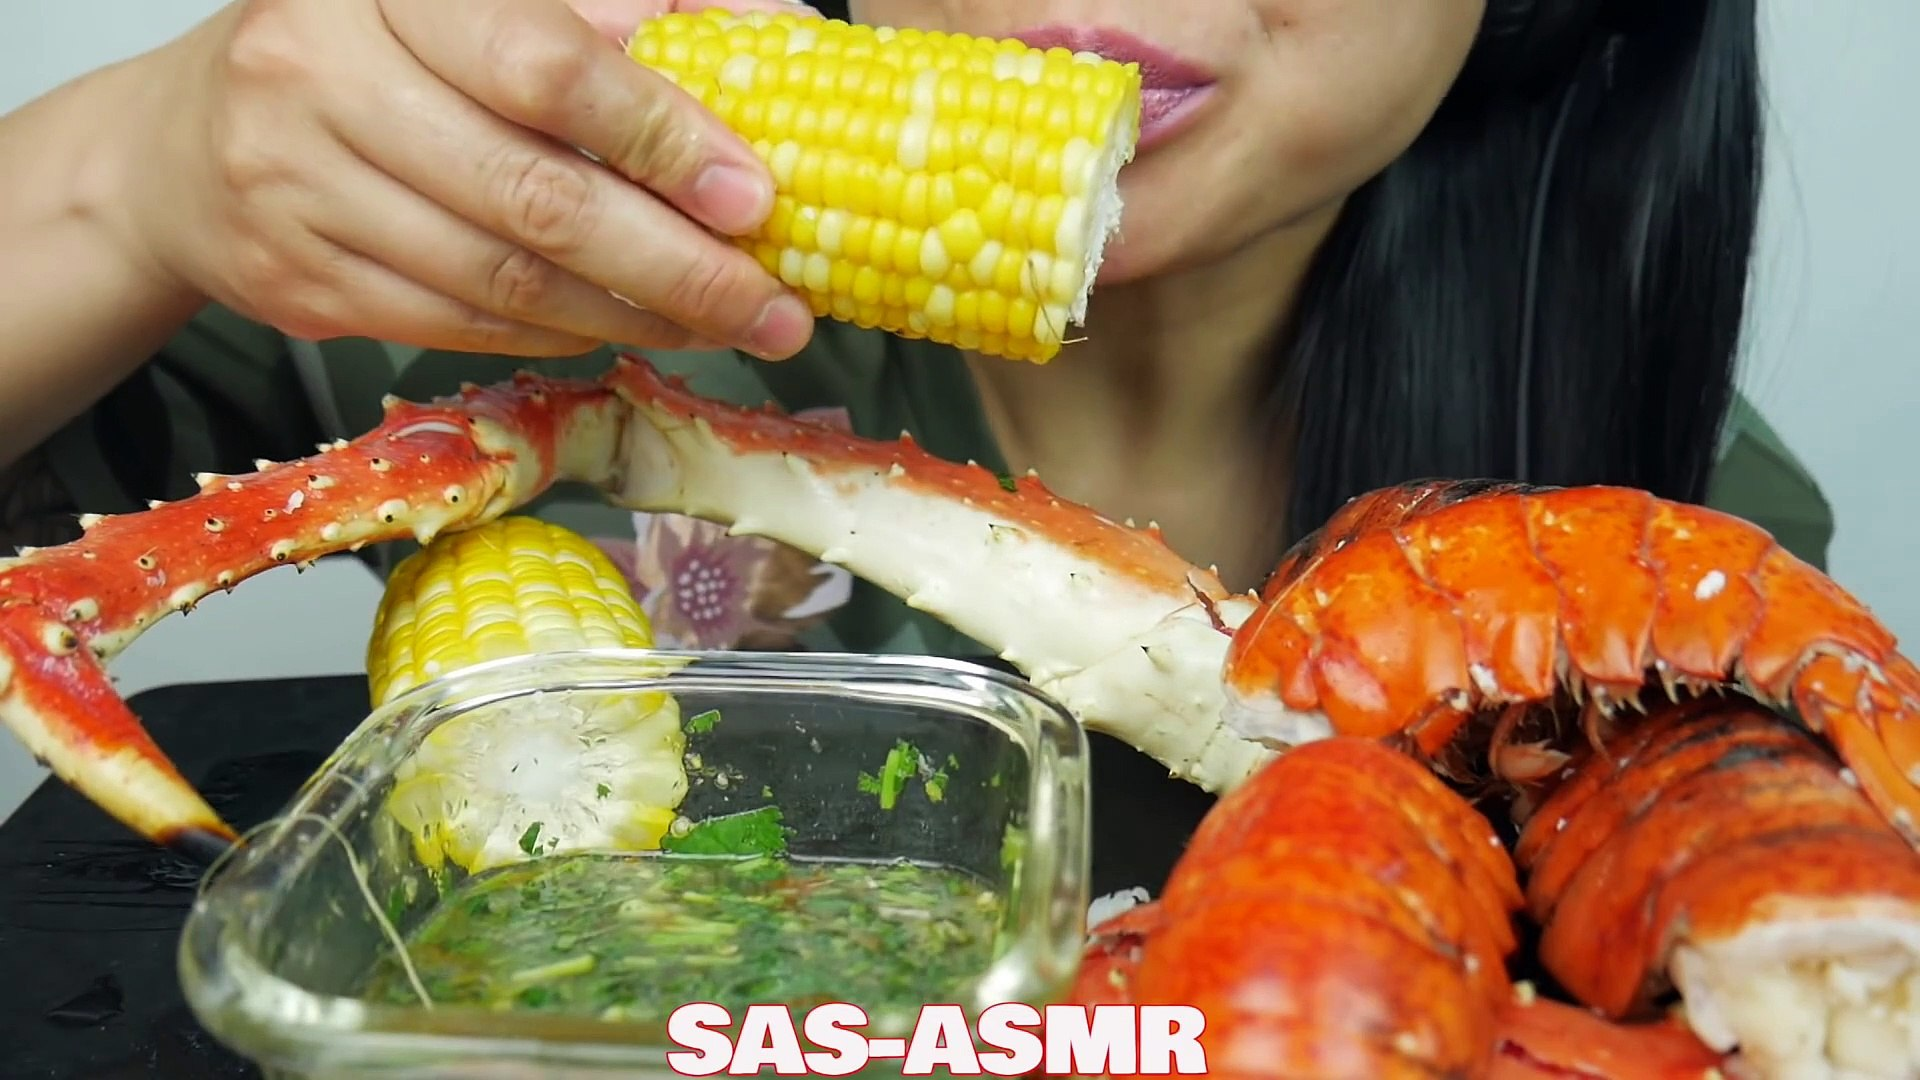 Asmr Seafood Boil How To Make Seafood Sauce Eating Sounds No Talking Sas Asmr Video Dailymotion See more of sas asmr new on facebook. asmr seafood boil how to make seafood sauce eating sounds no talking sas asmr